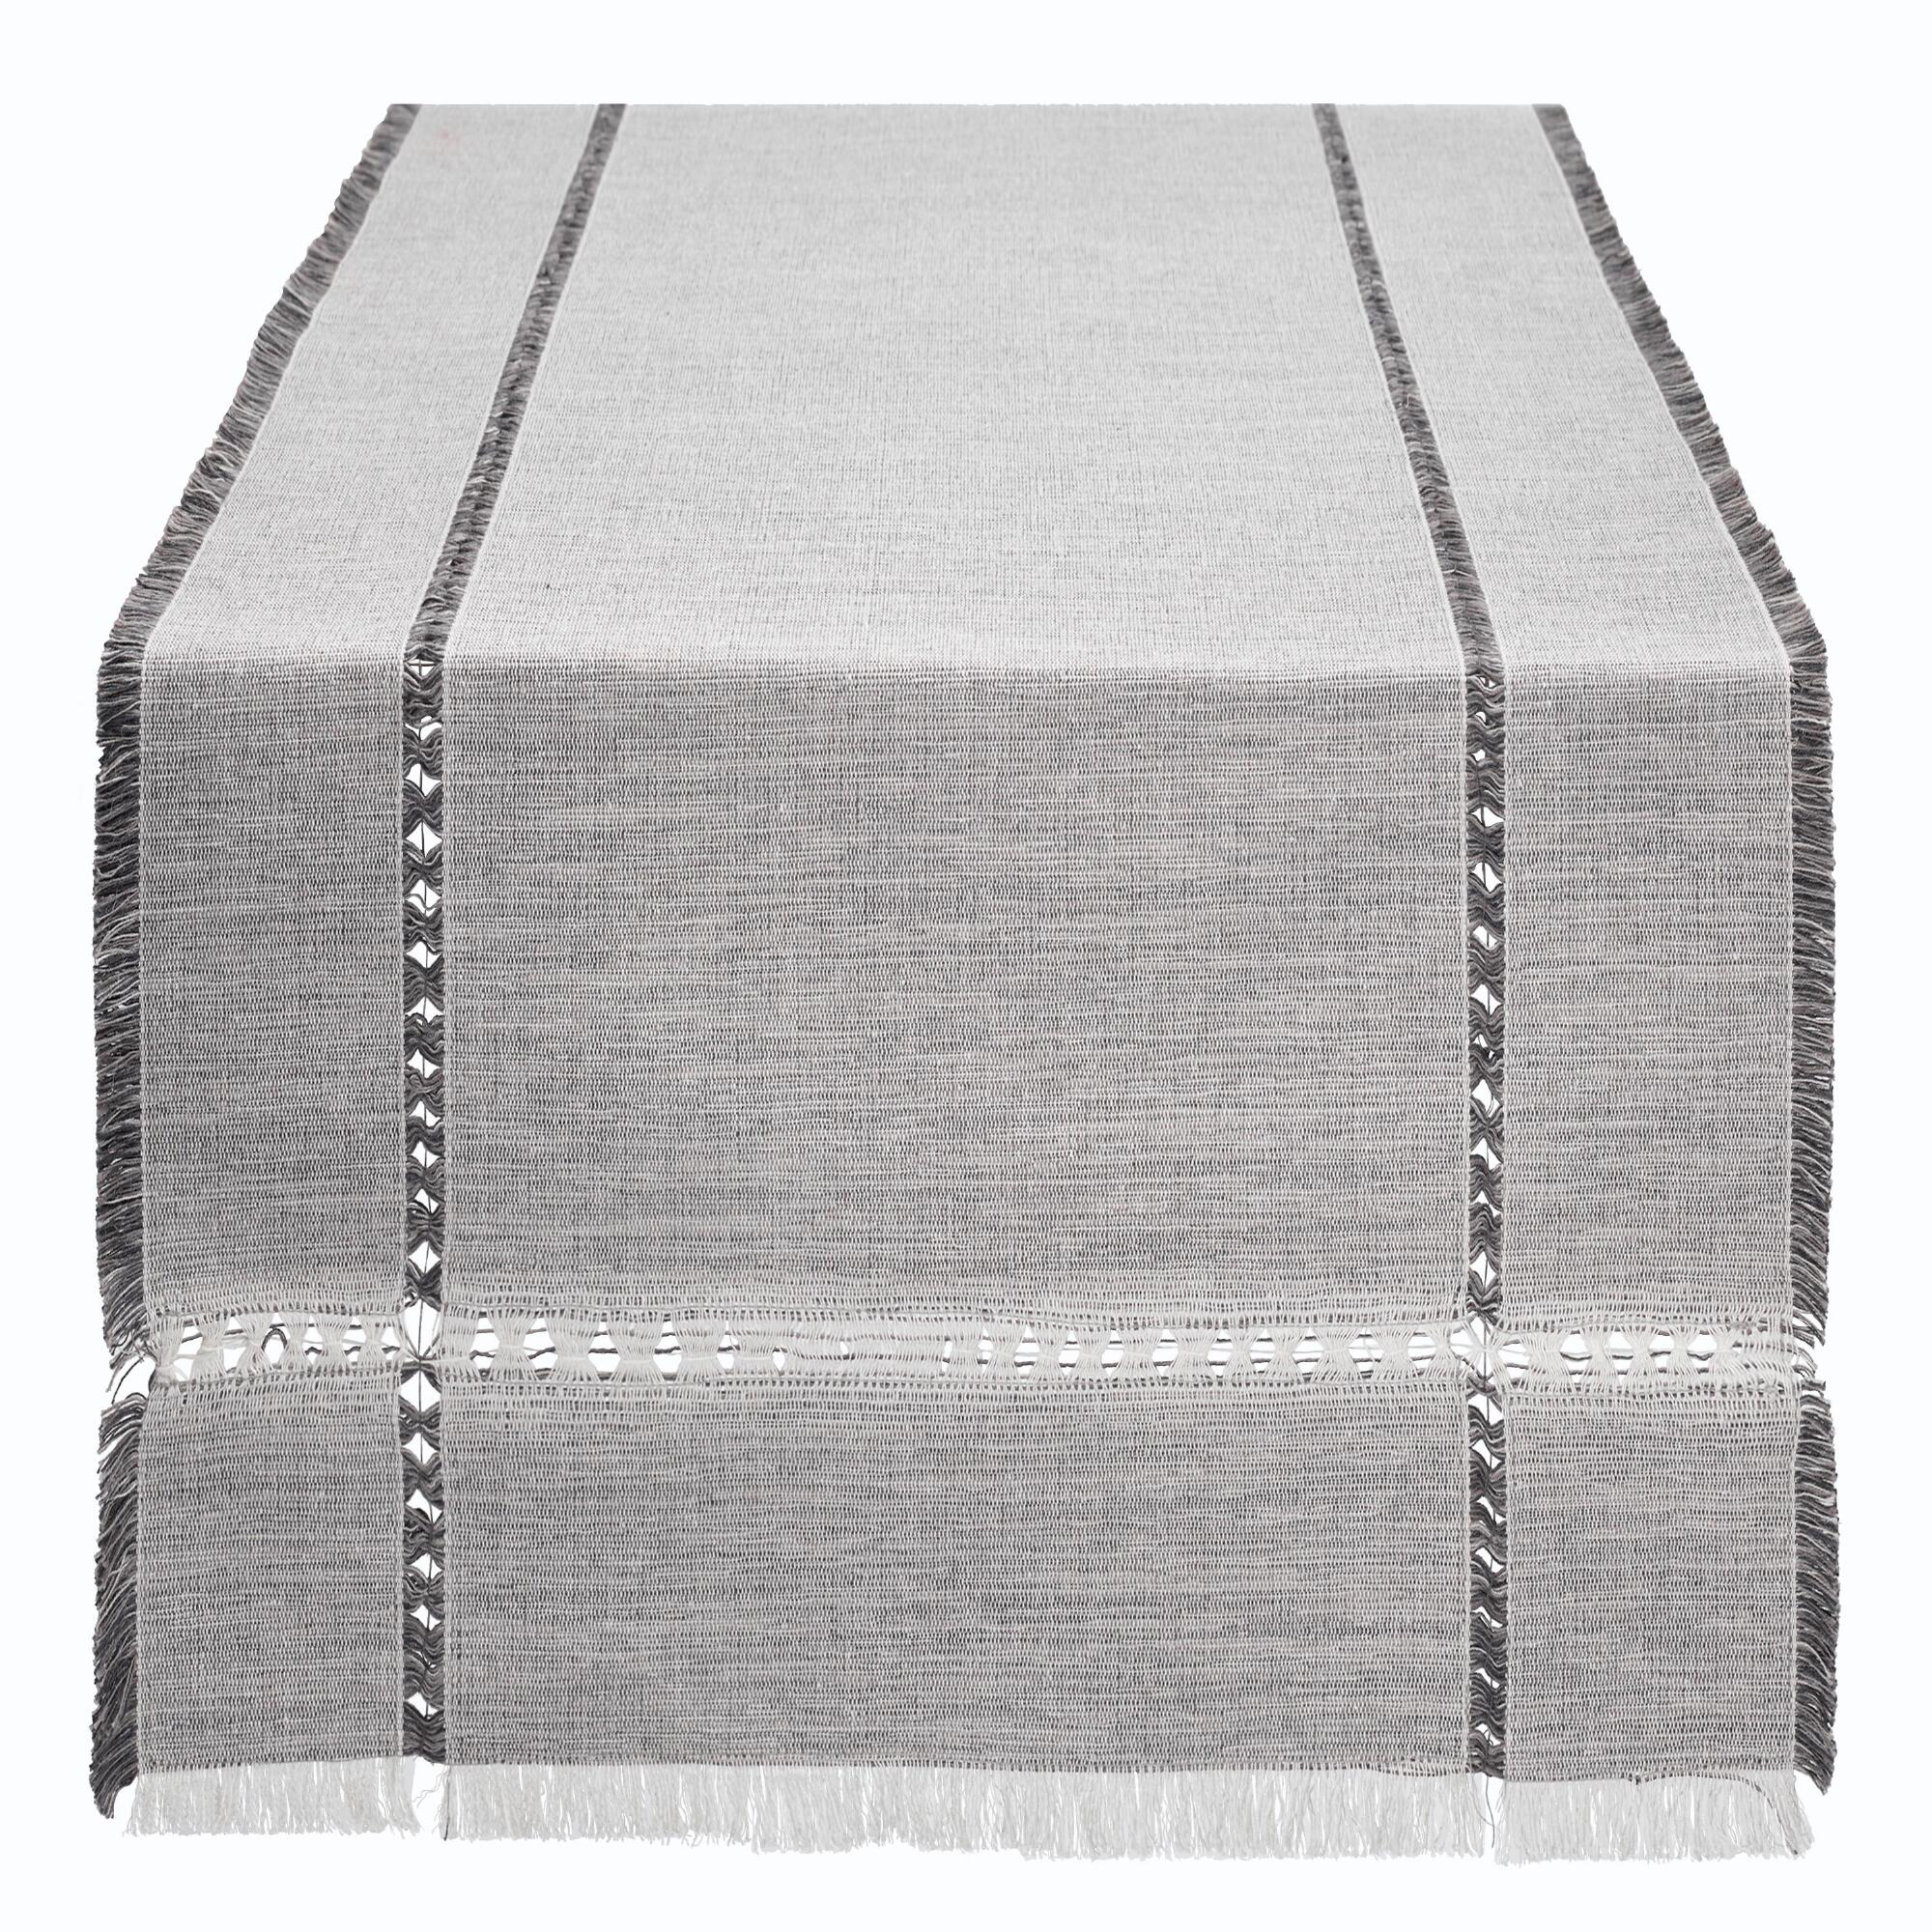 Oversized Gray Melange Khadi Table Runner - Cotton by World Market